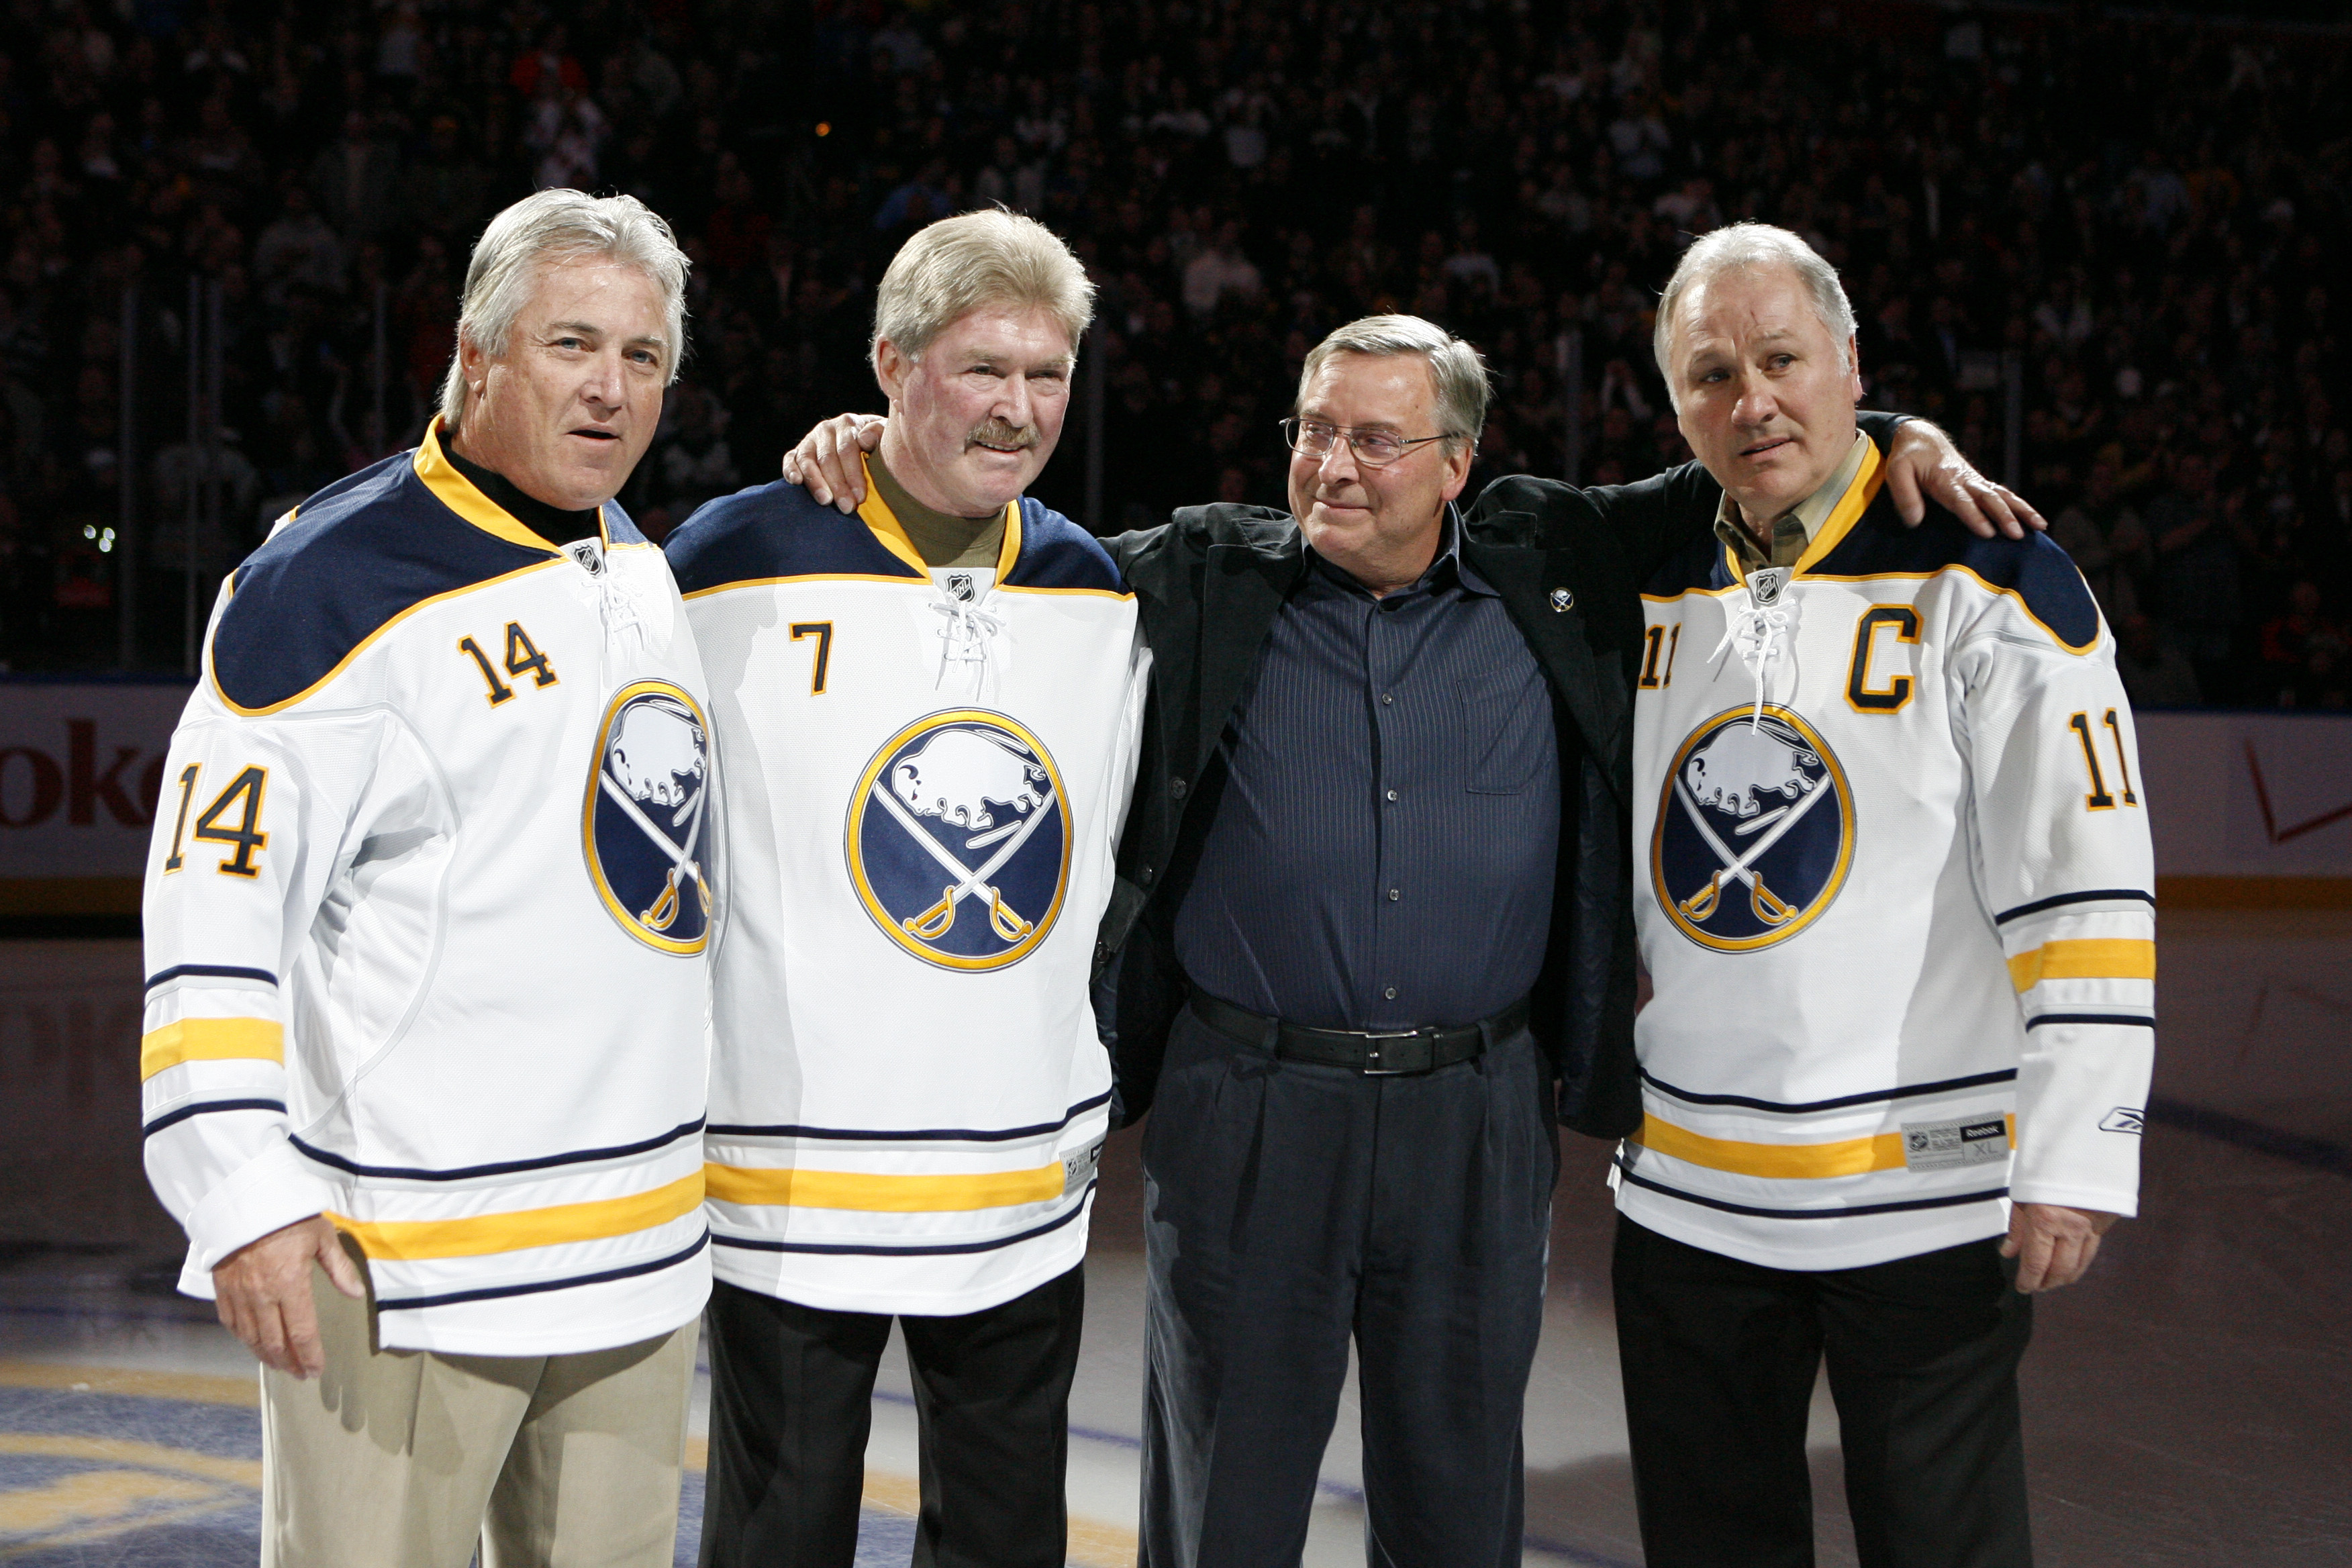 Buffalo Sabres owner Terry Pegula meets the French Connection, Rene Robert, Rick Martin and Gilbert Perreault, before a game Feb. 23, 2011. {James P. McCoy / Buffalo News}